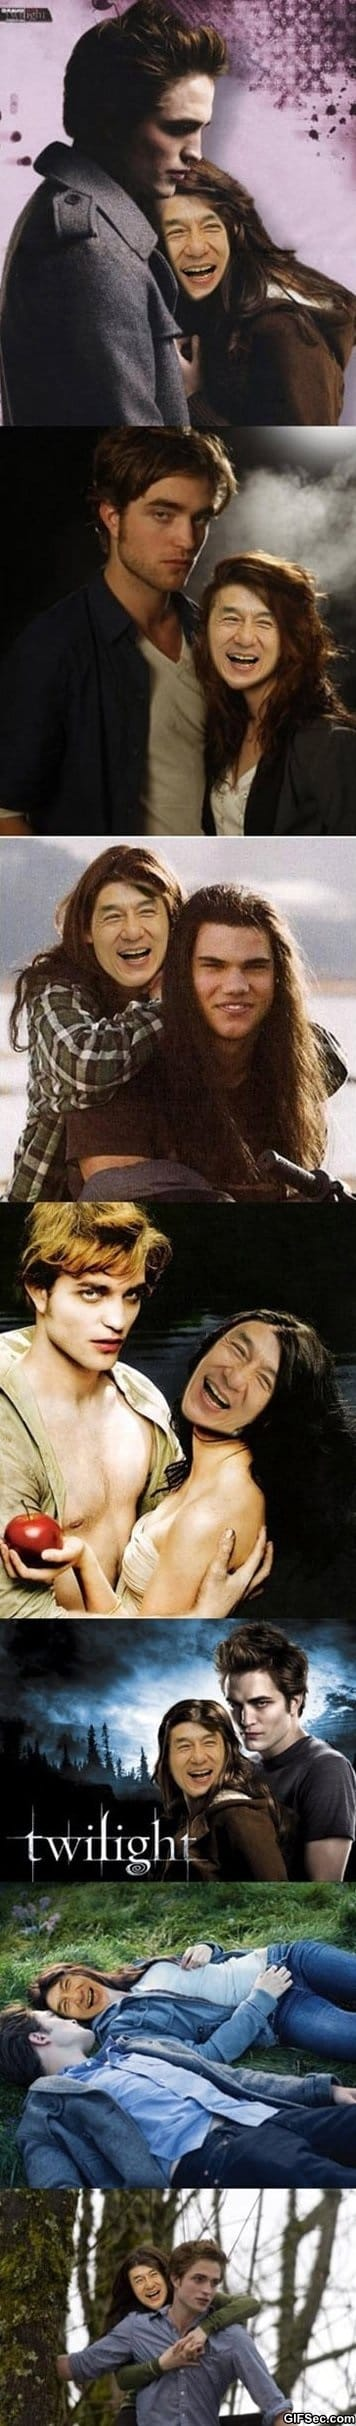 Funny Pictures - Twilight starring Jackie Chan